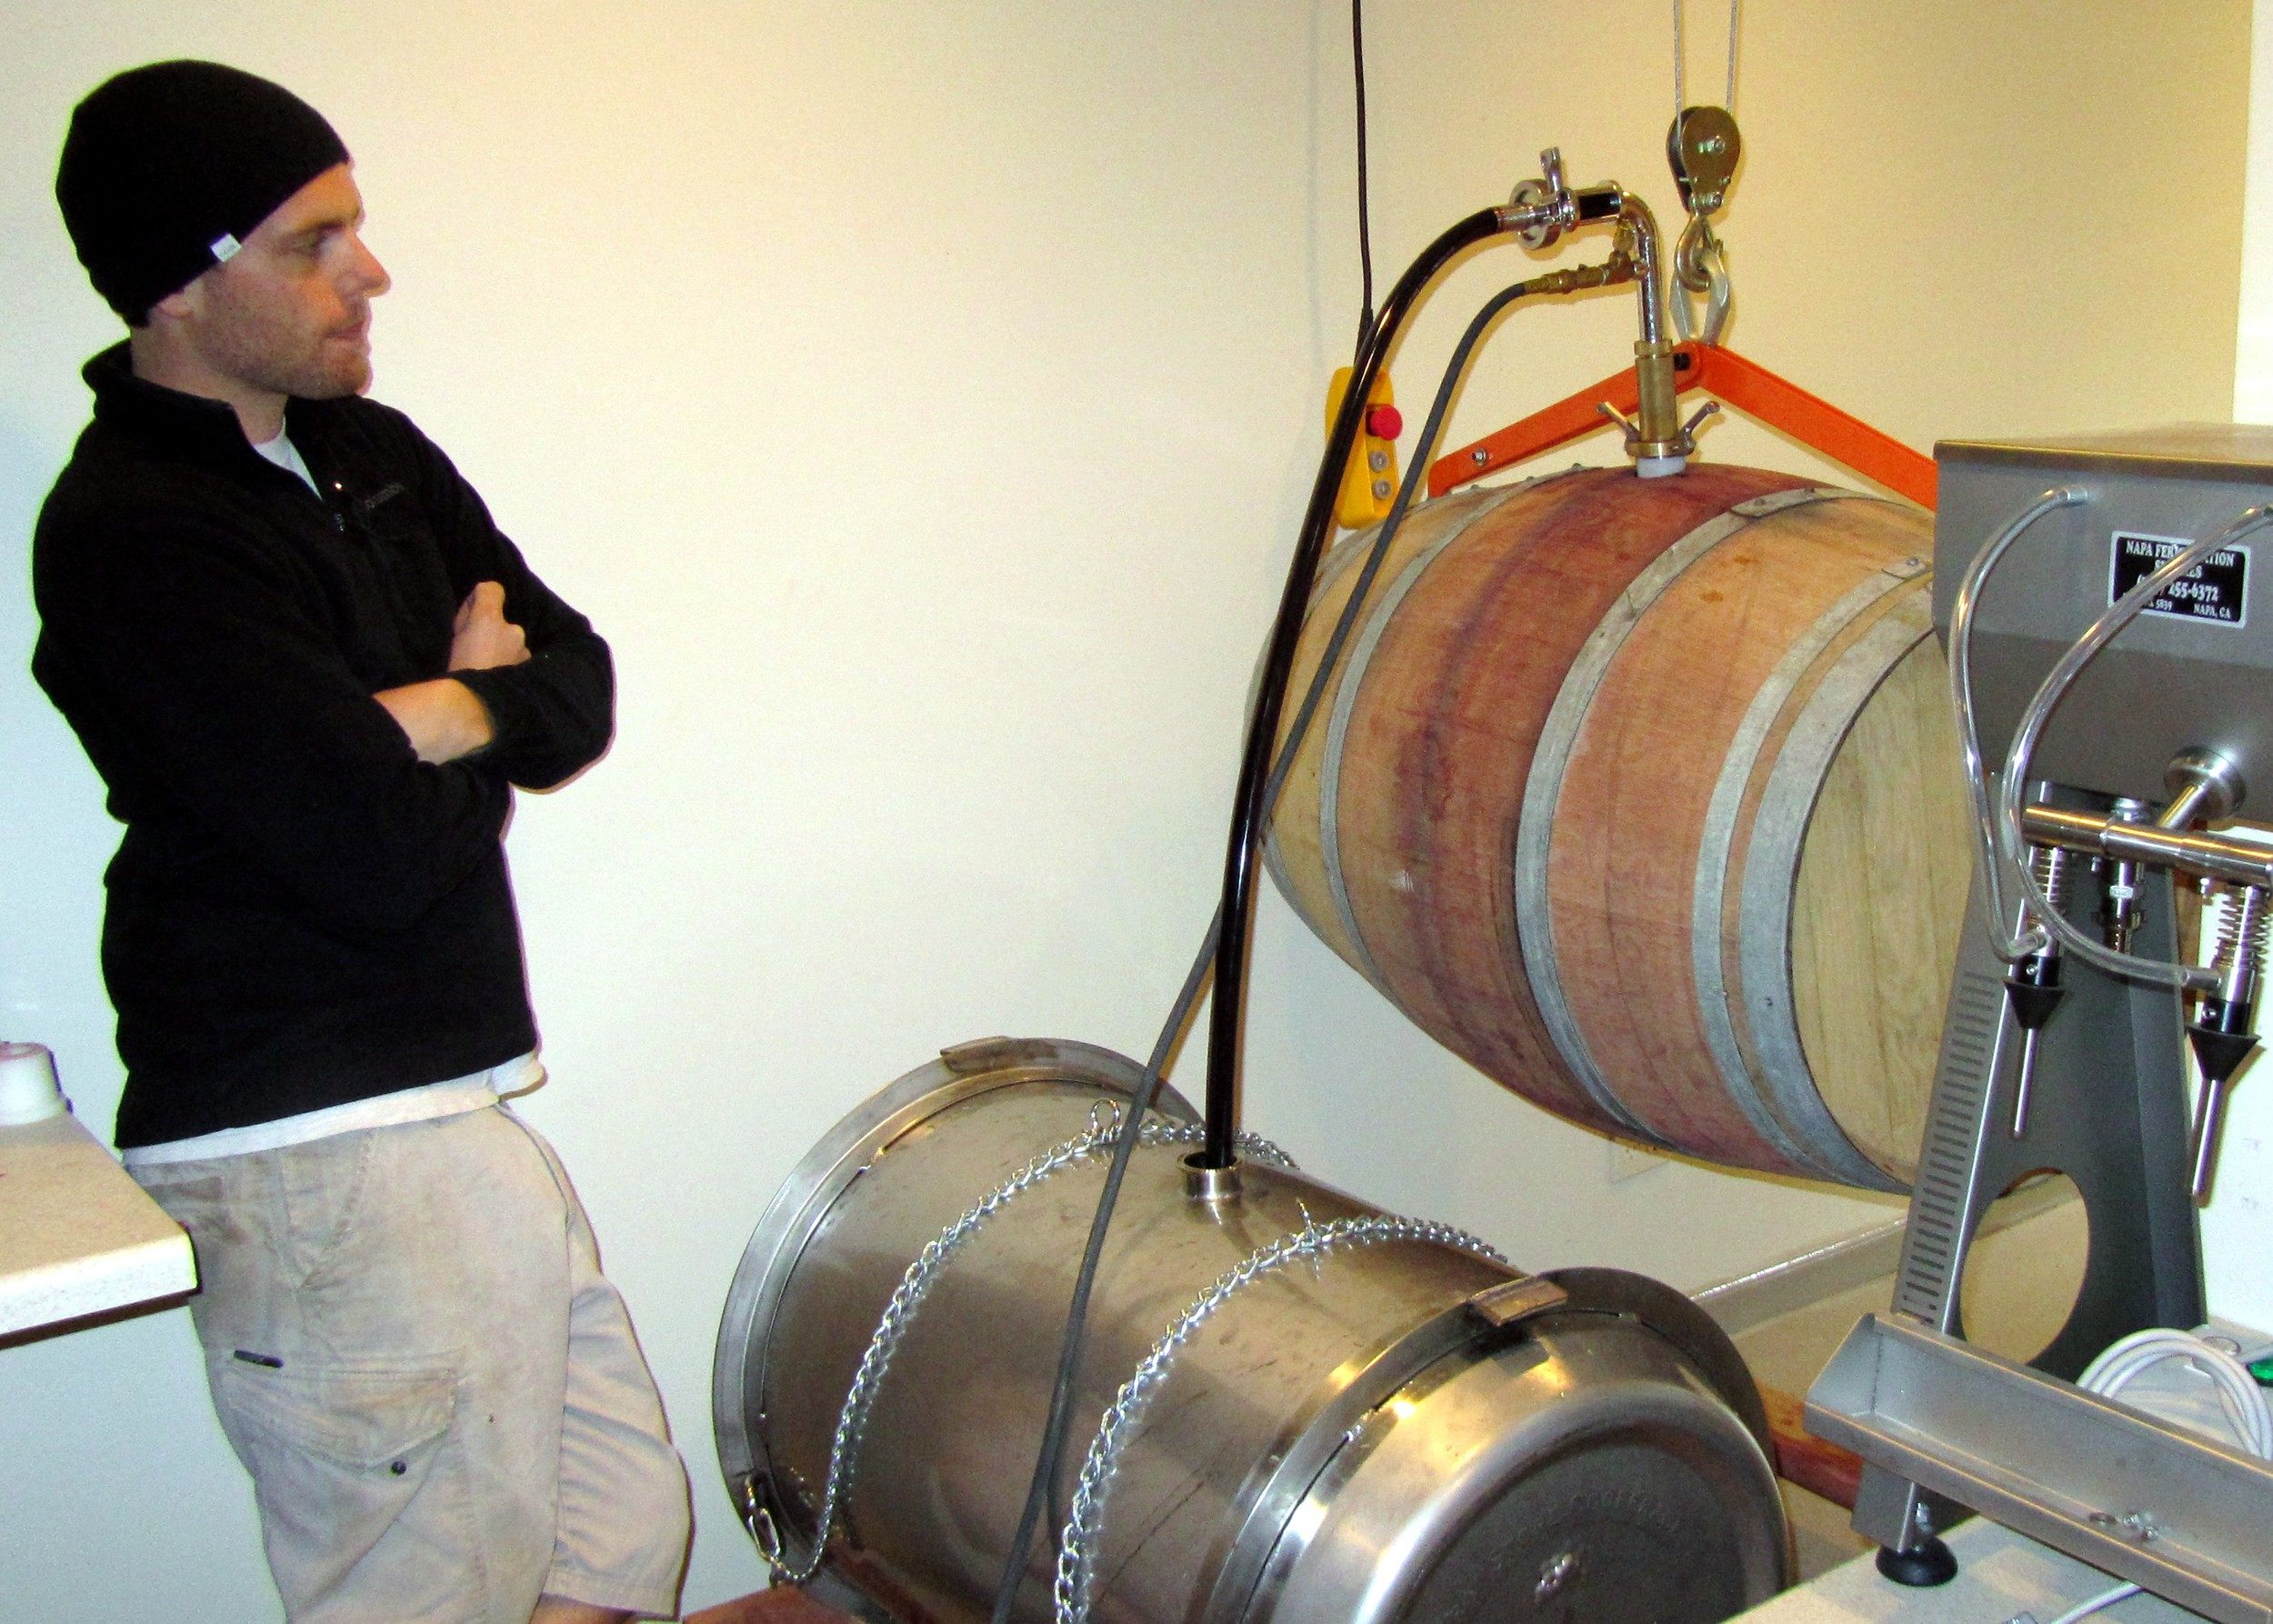 1 Aran Healy emptying barrel into steel tank so the barrel can be cleaned